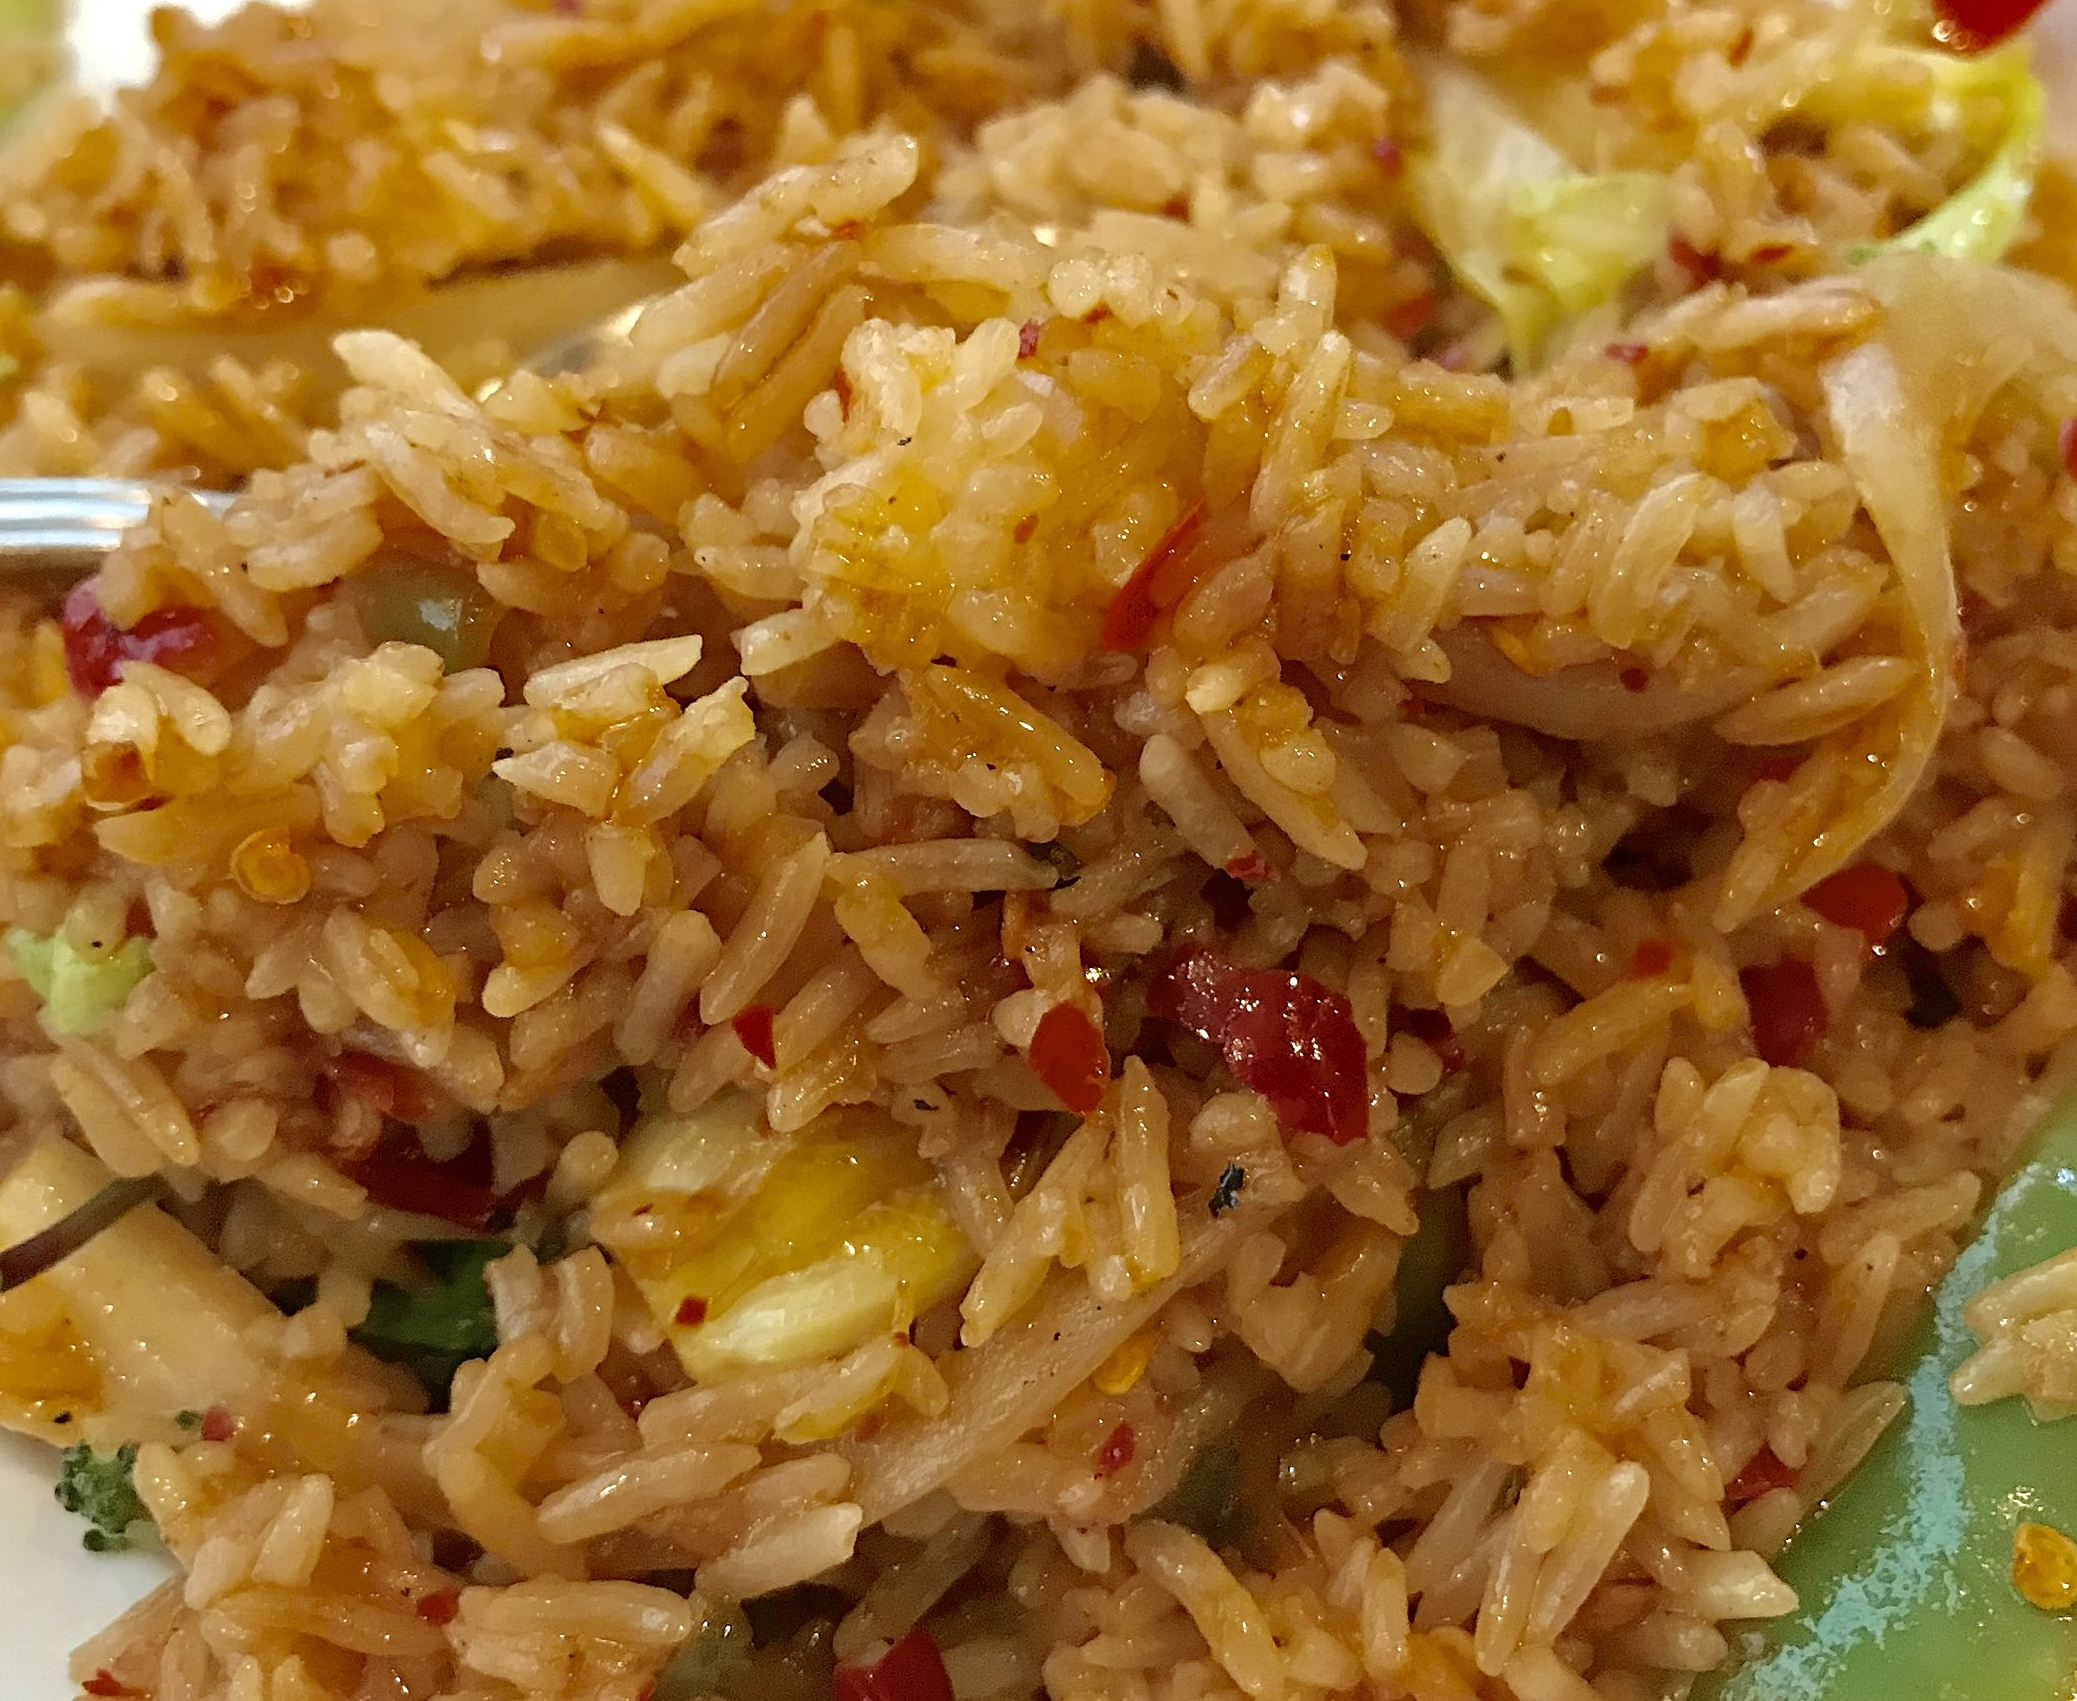 Spicy Fried rice with veggies @ThaiDishes #Foodie